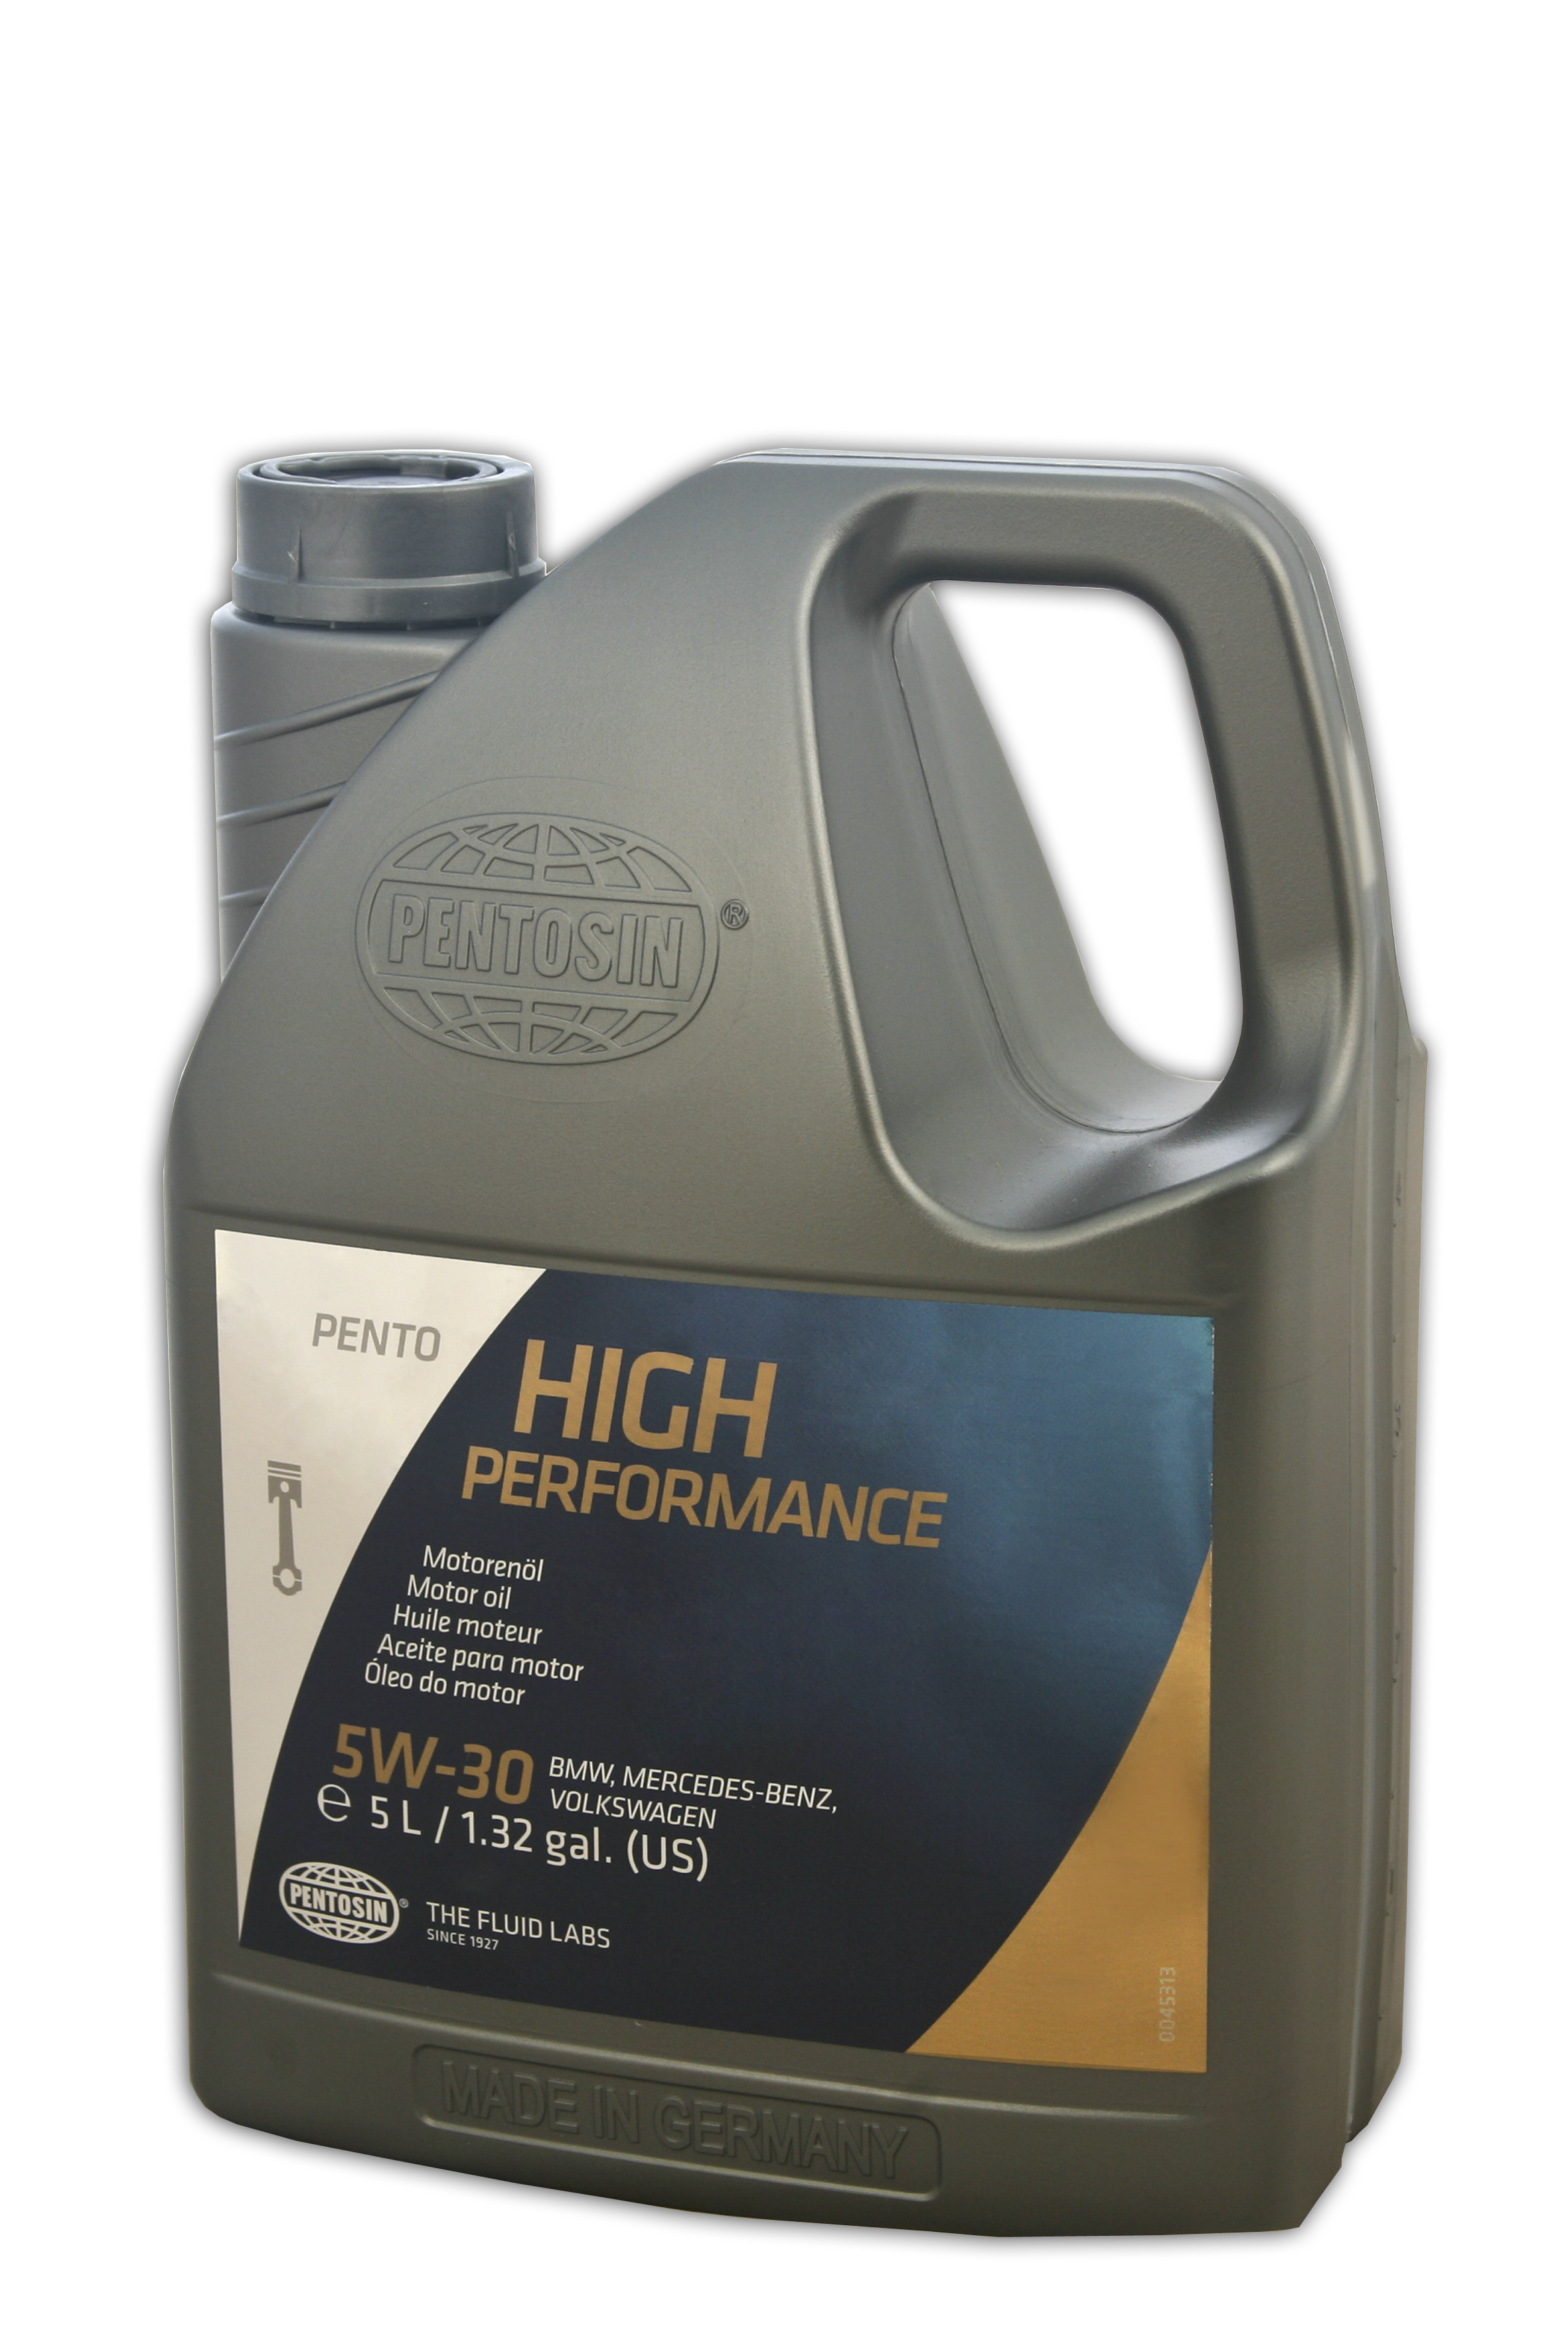 Pento High Performance 5W-30